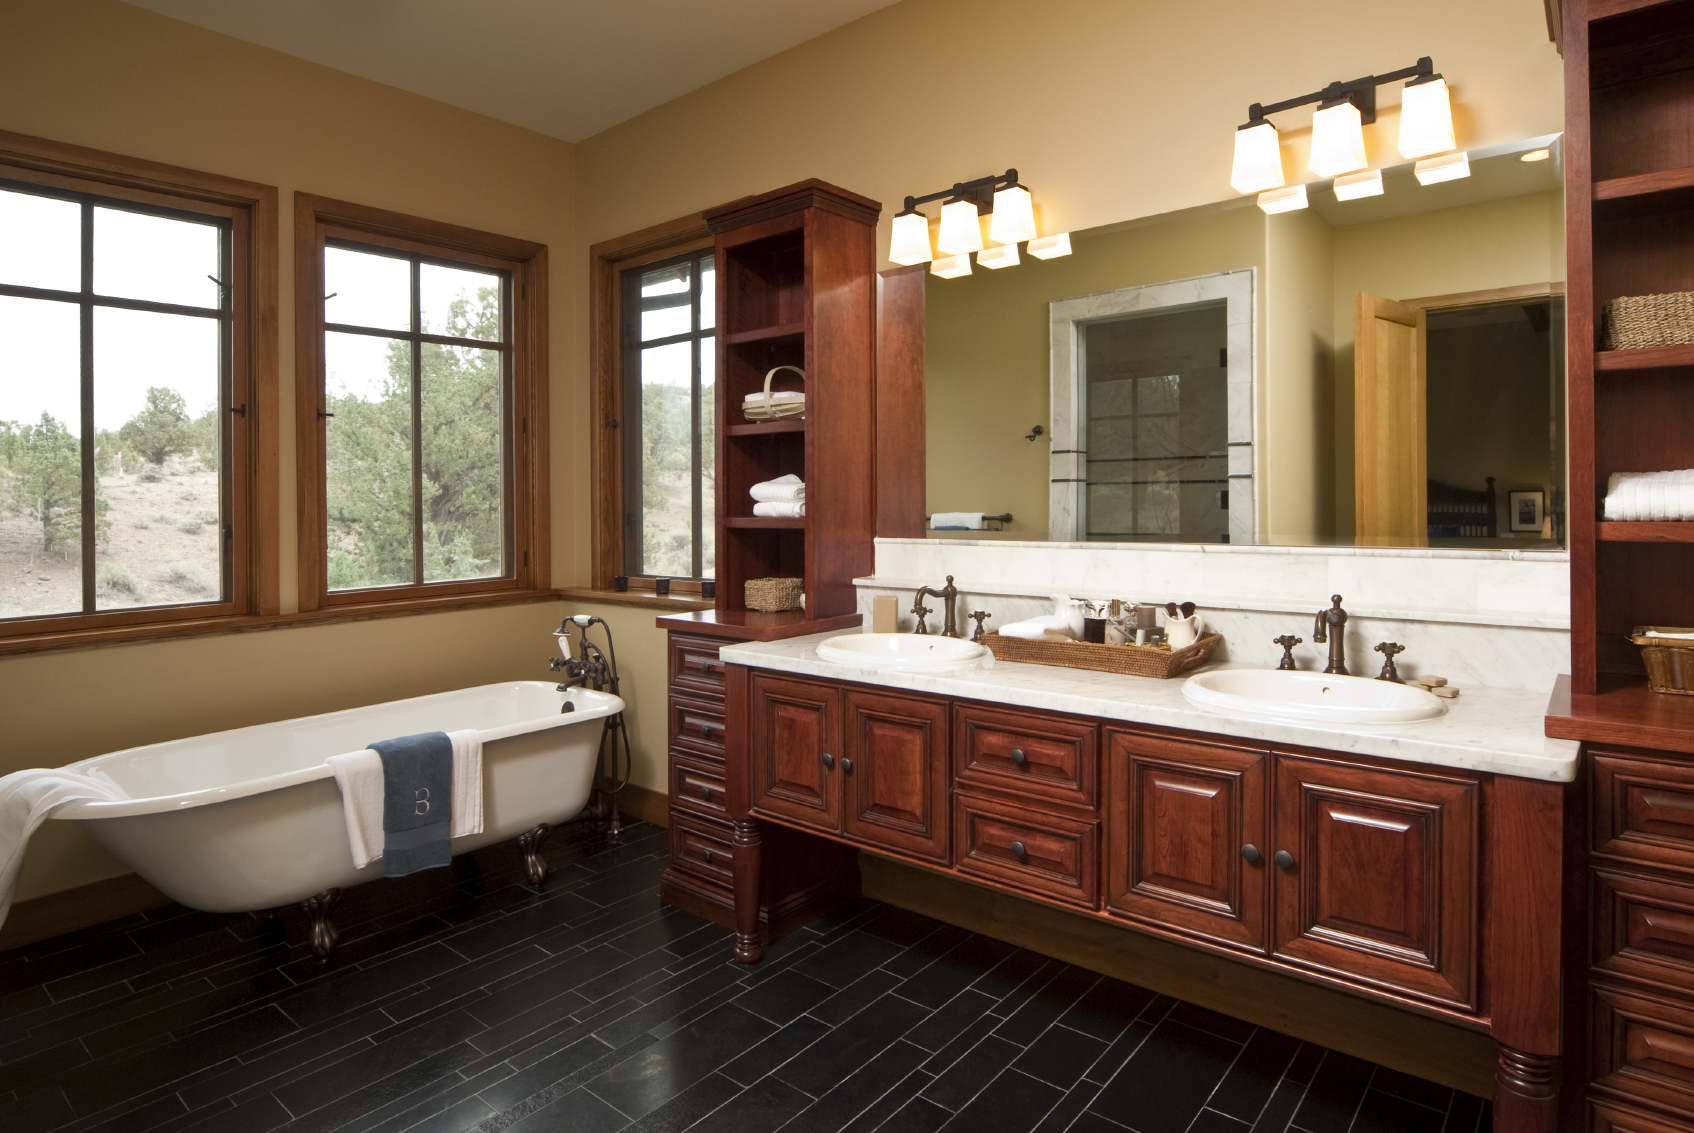 Bathroom remodel ideas 2014 - Bathroom Photos Large Master Bath